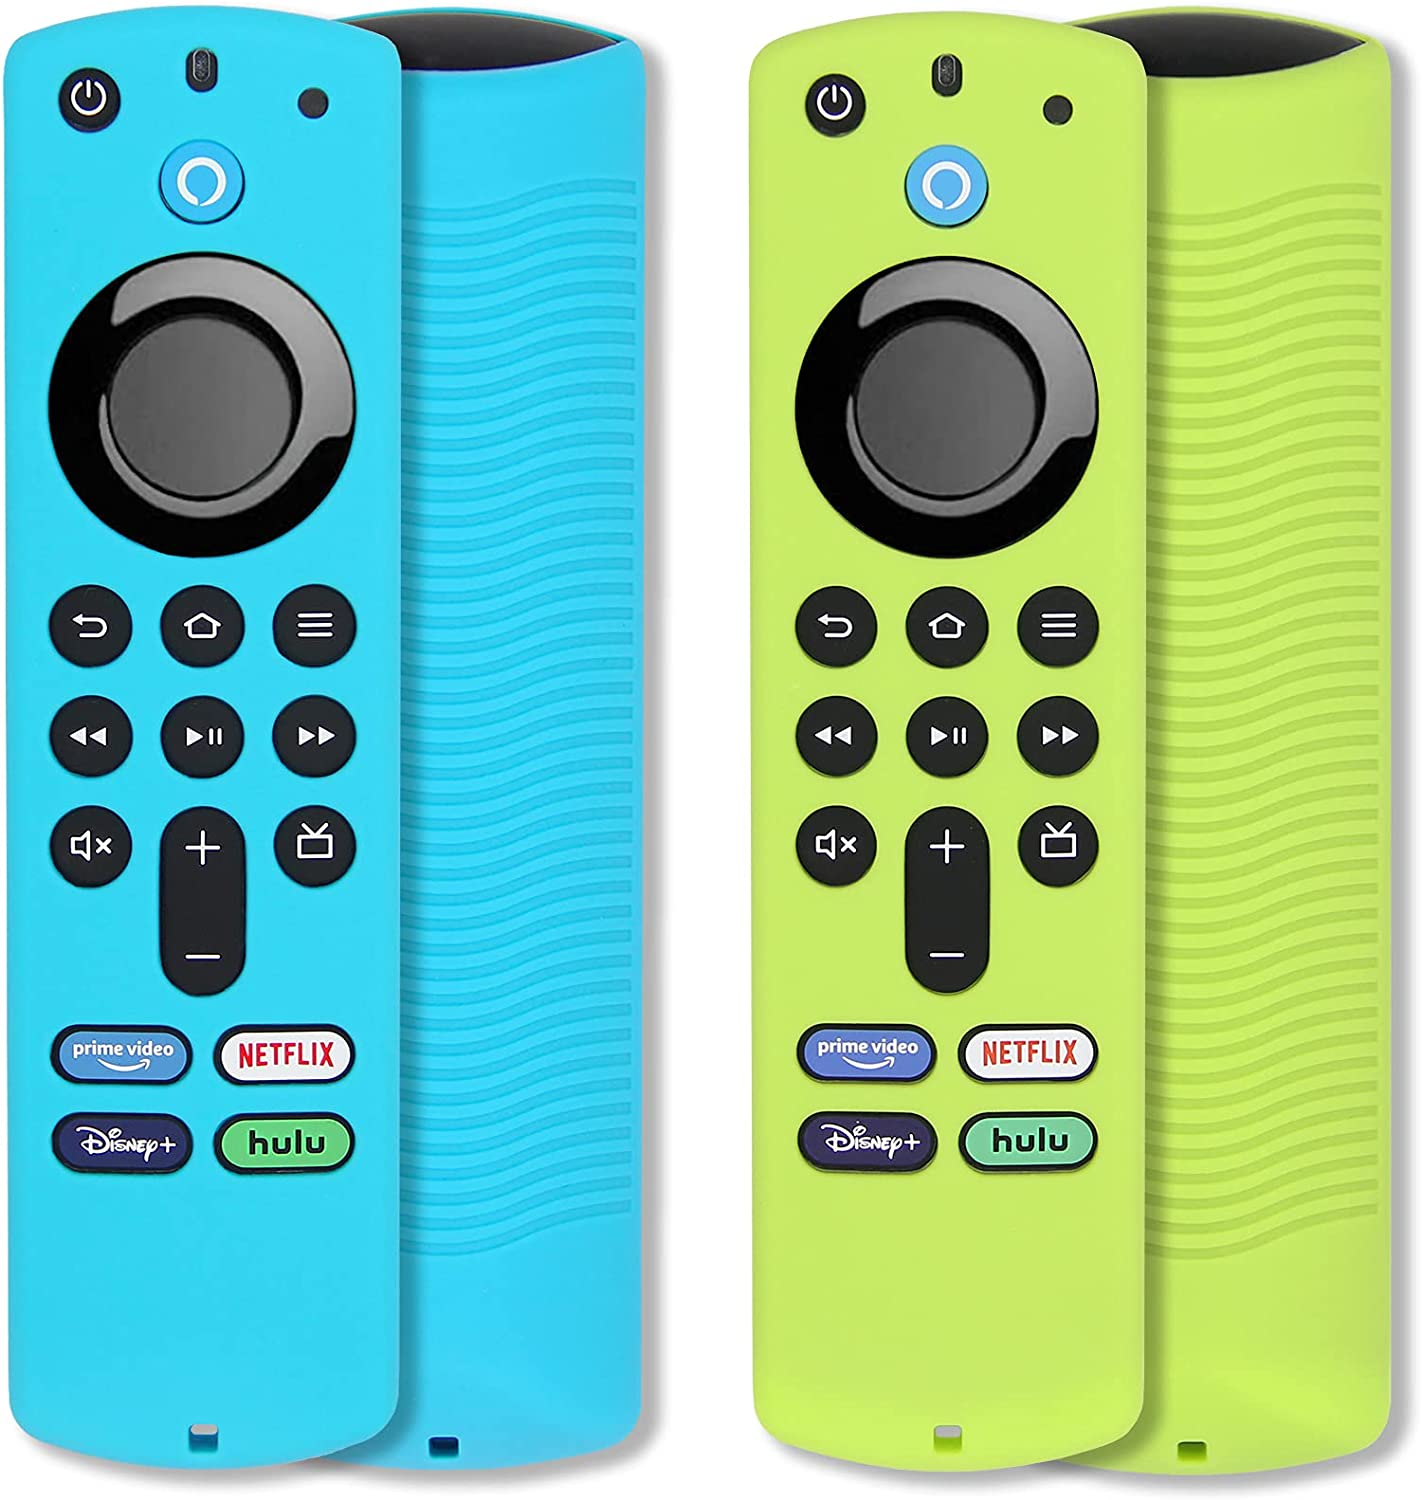 [2 Pack] Pinowu Firestick Remote Cover Case Compatible with Firetv Stick (3rd Gen) Voice Remote, Anti Slip Shockproof Silicone Sleeve with Wrist Strap for TV Stick 2021 (Green & Turquoise)